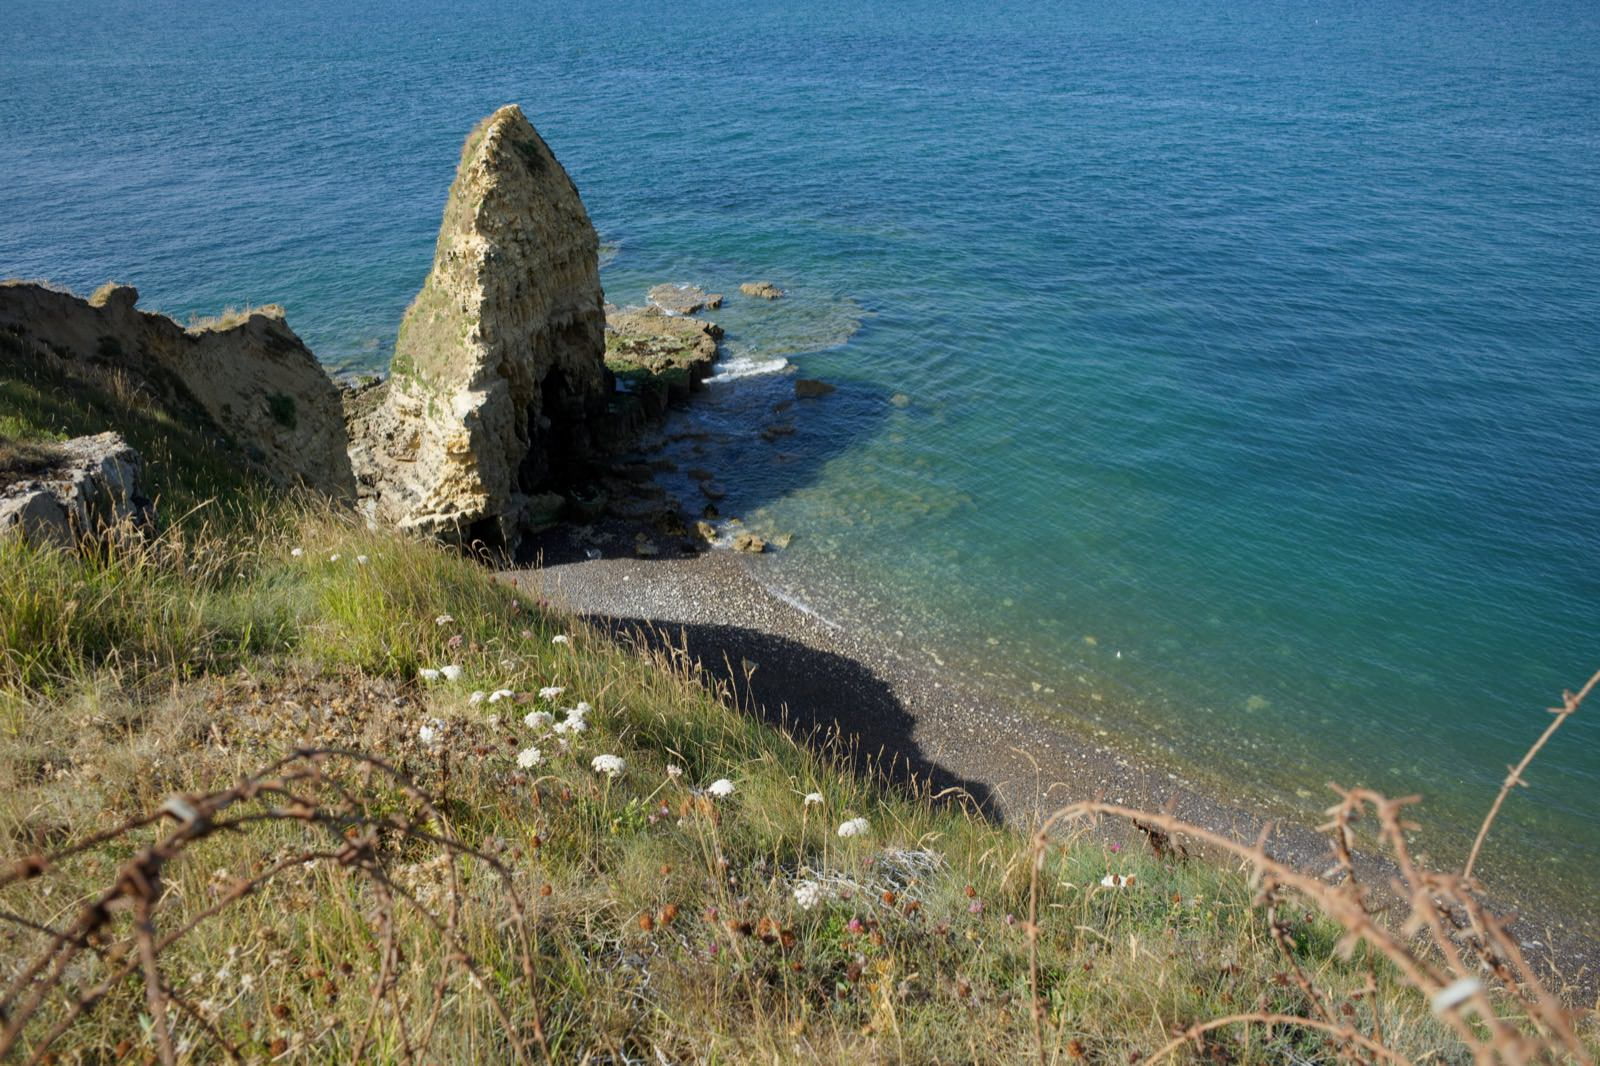 Pointe du Hoc - The cliff soldiers climbed while being shot at